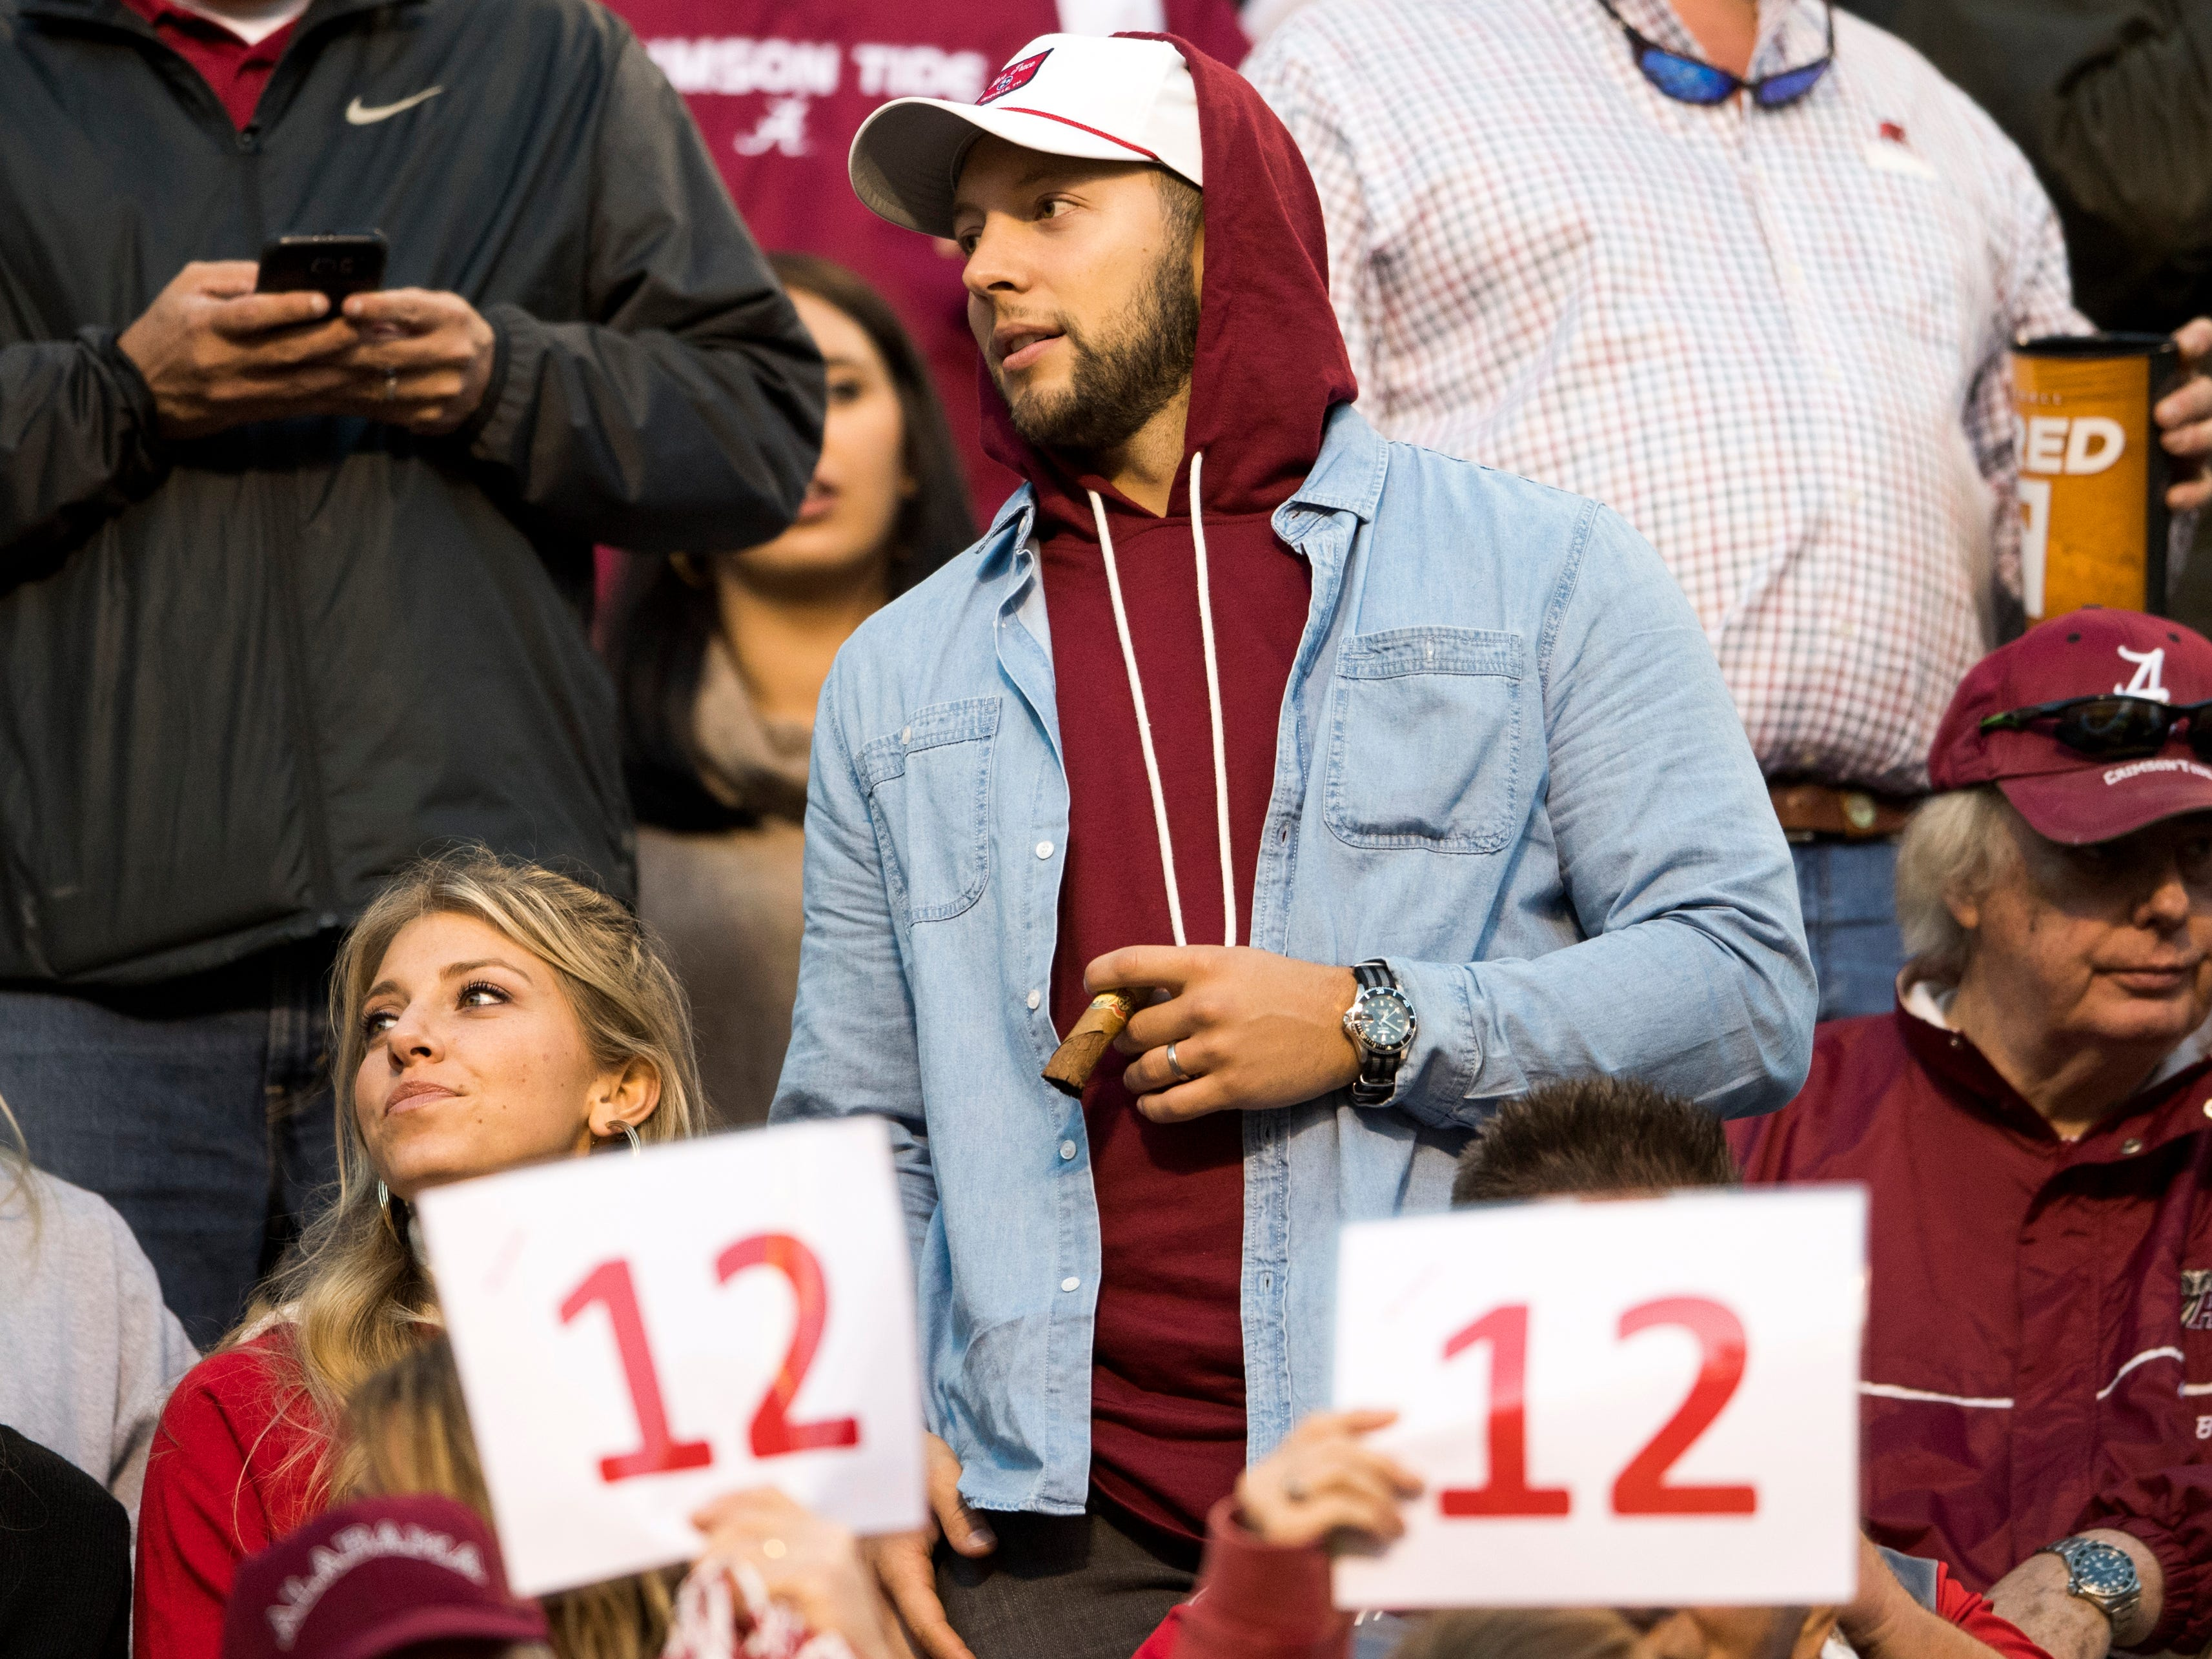 """Alabama fans light cigars and hold up signs with """"12"""" on them, signifying the 12-game win streak against Tennessee, during the Tennessee Volunteers' game against Alabama in Neyland Stadium on Saturday, October 20, 2018."""